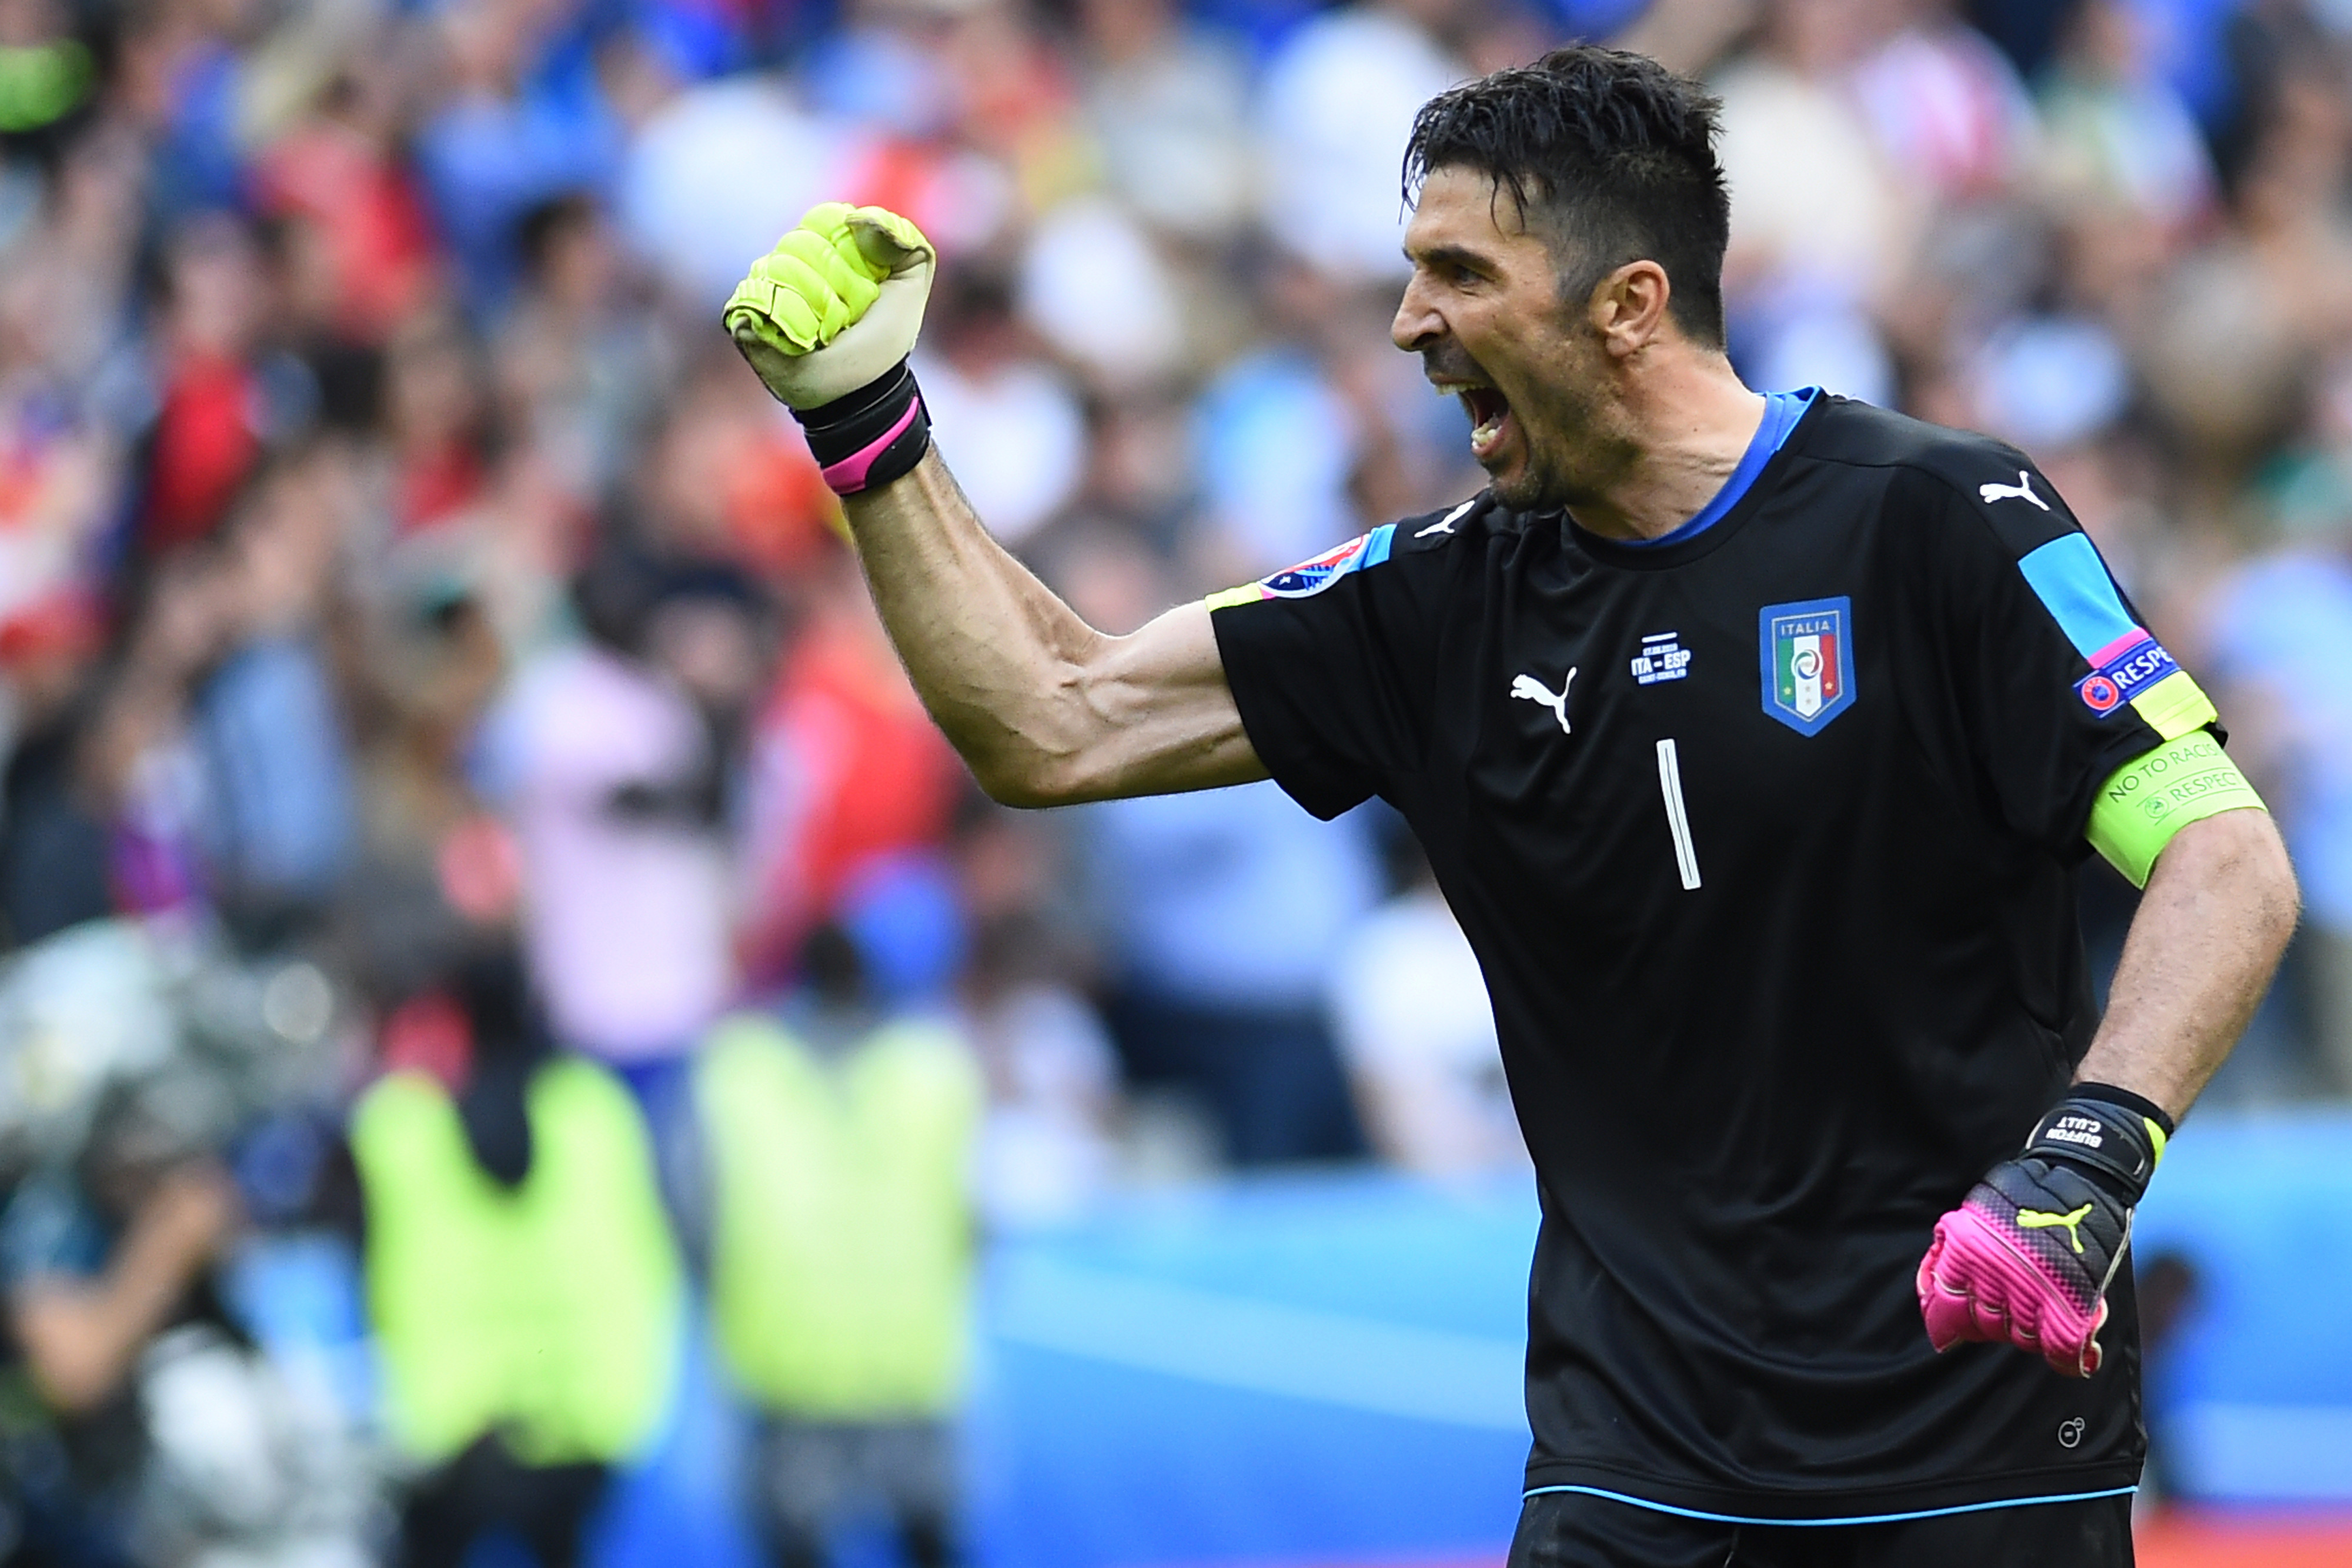 Football - Coupe du monde - Italie-Espagne en DIRECT